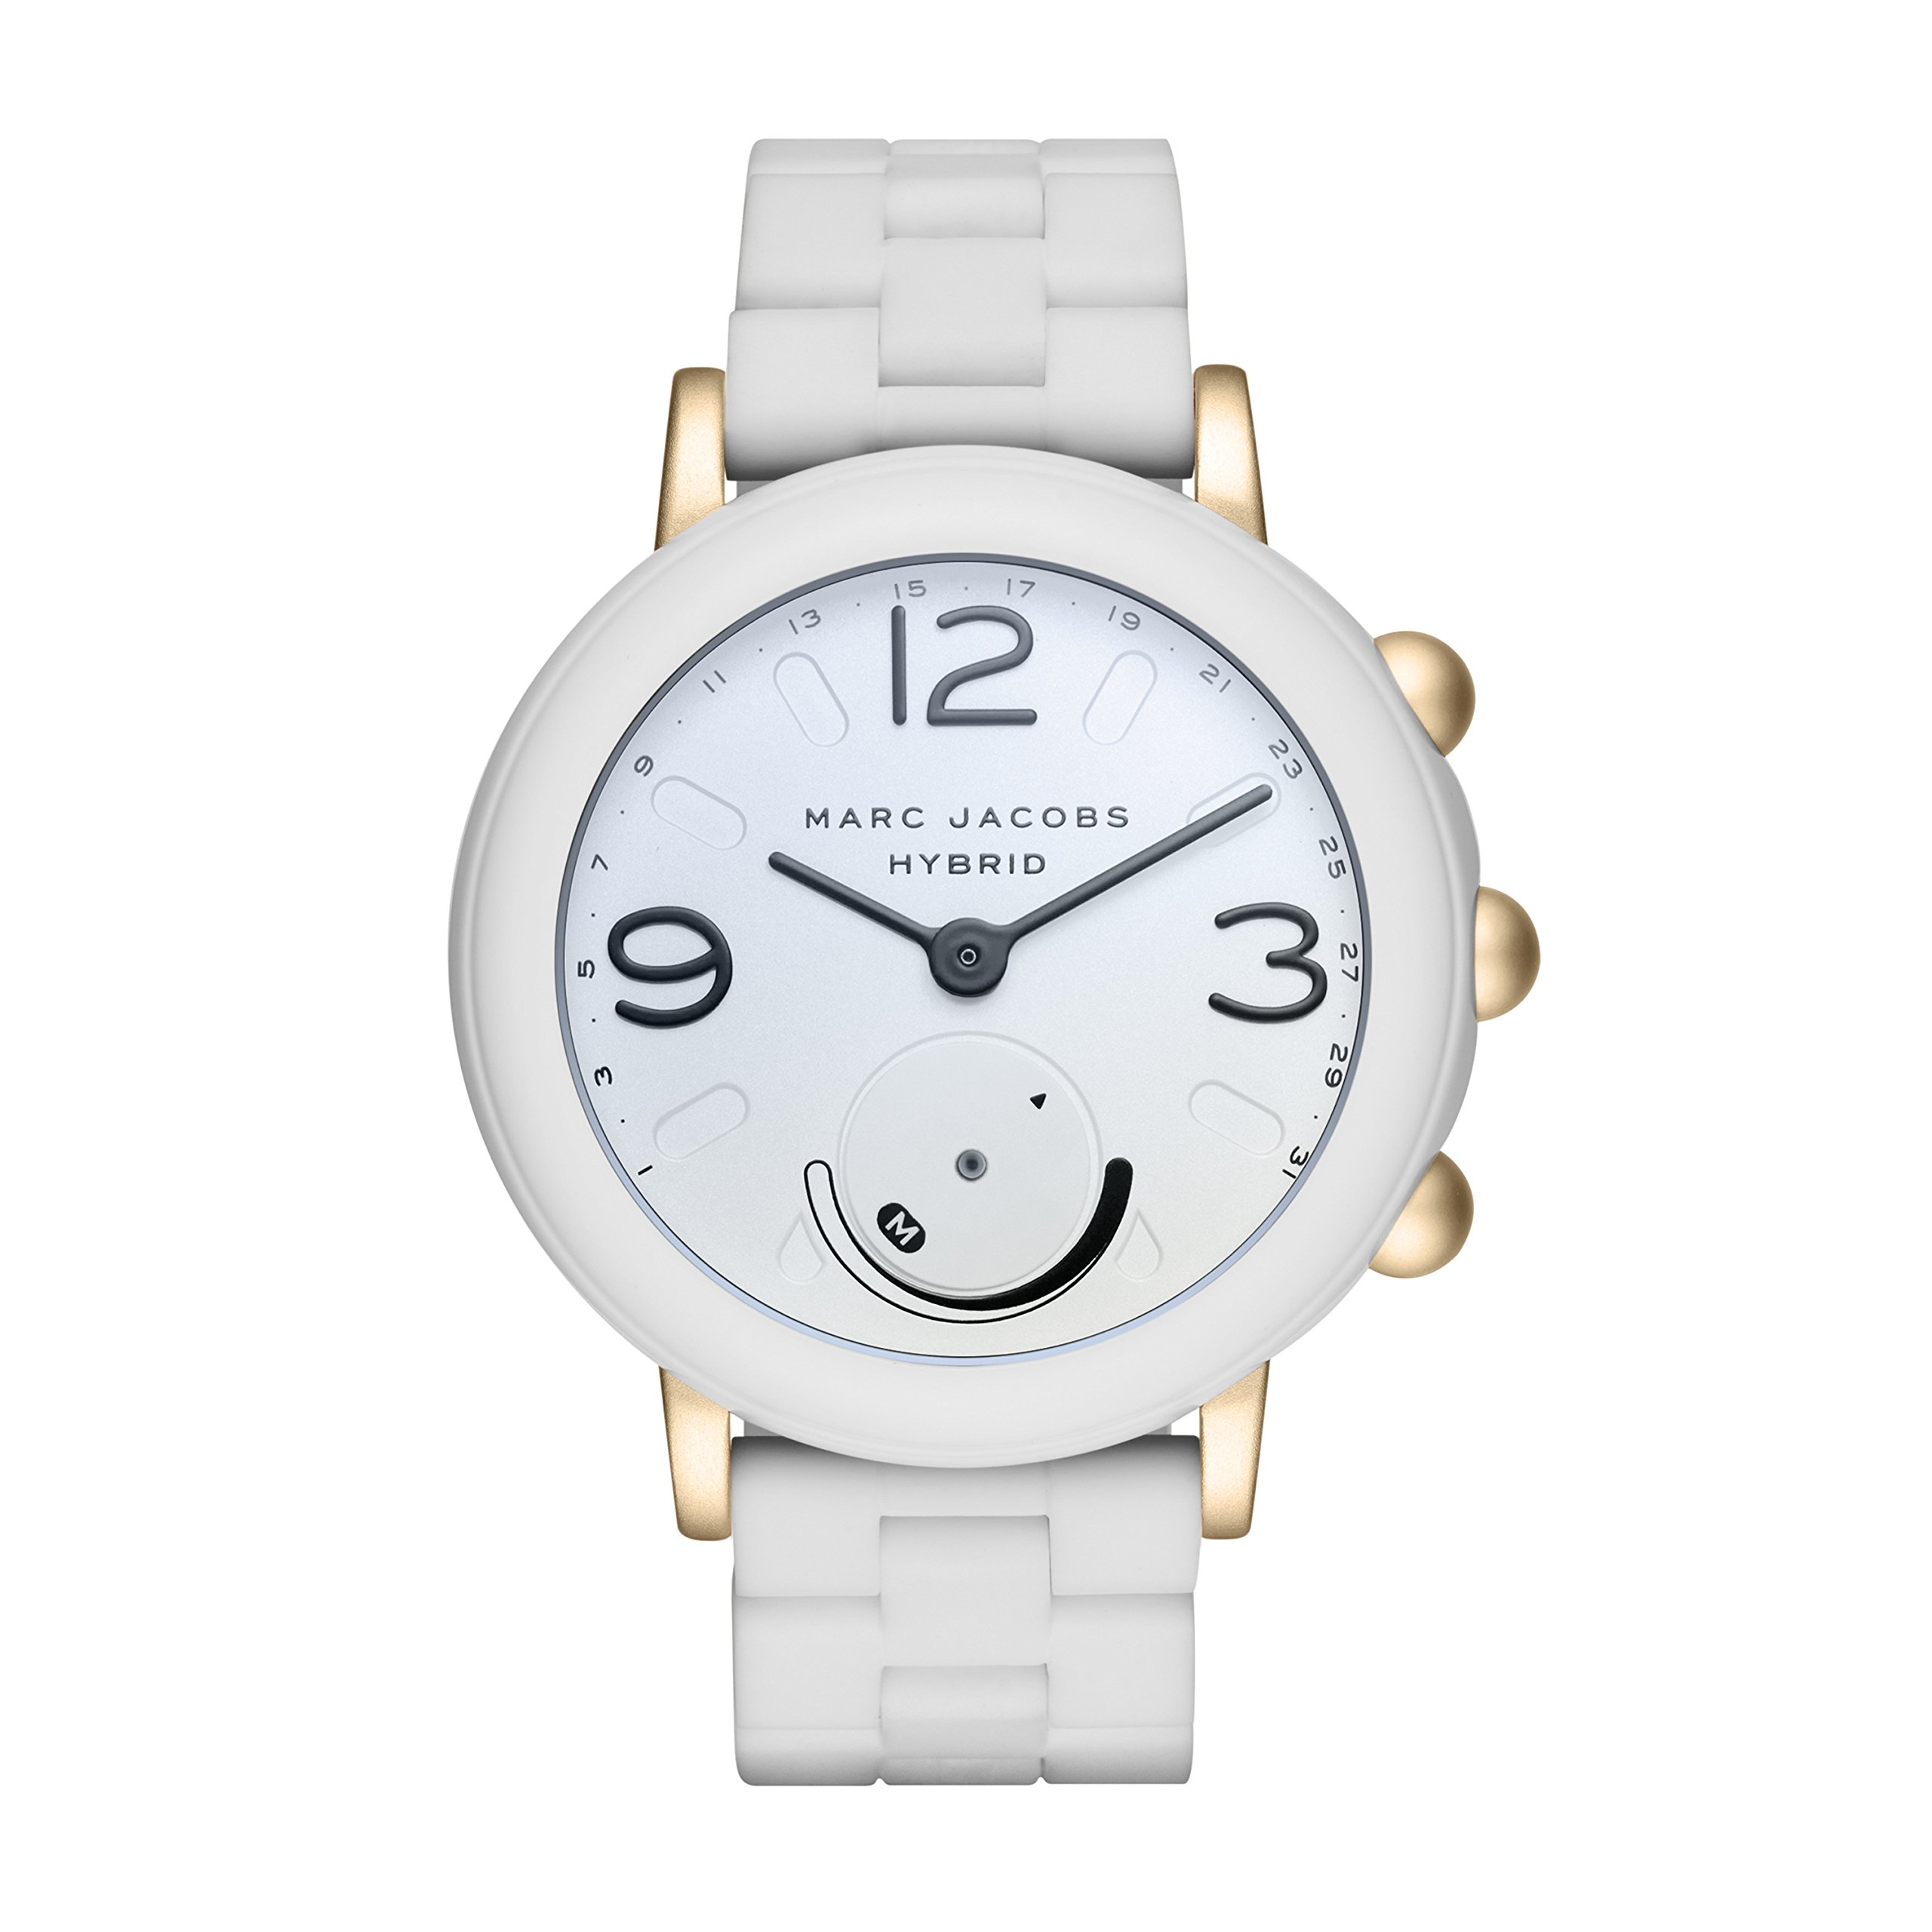 Marc Jacobs Women's Riley Aluminum and Silicone Hybrid Smartwatch, Color: Gold-Tone, White (Model: MJT1004) by Marc Jacobs